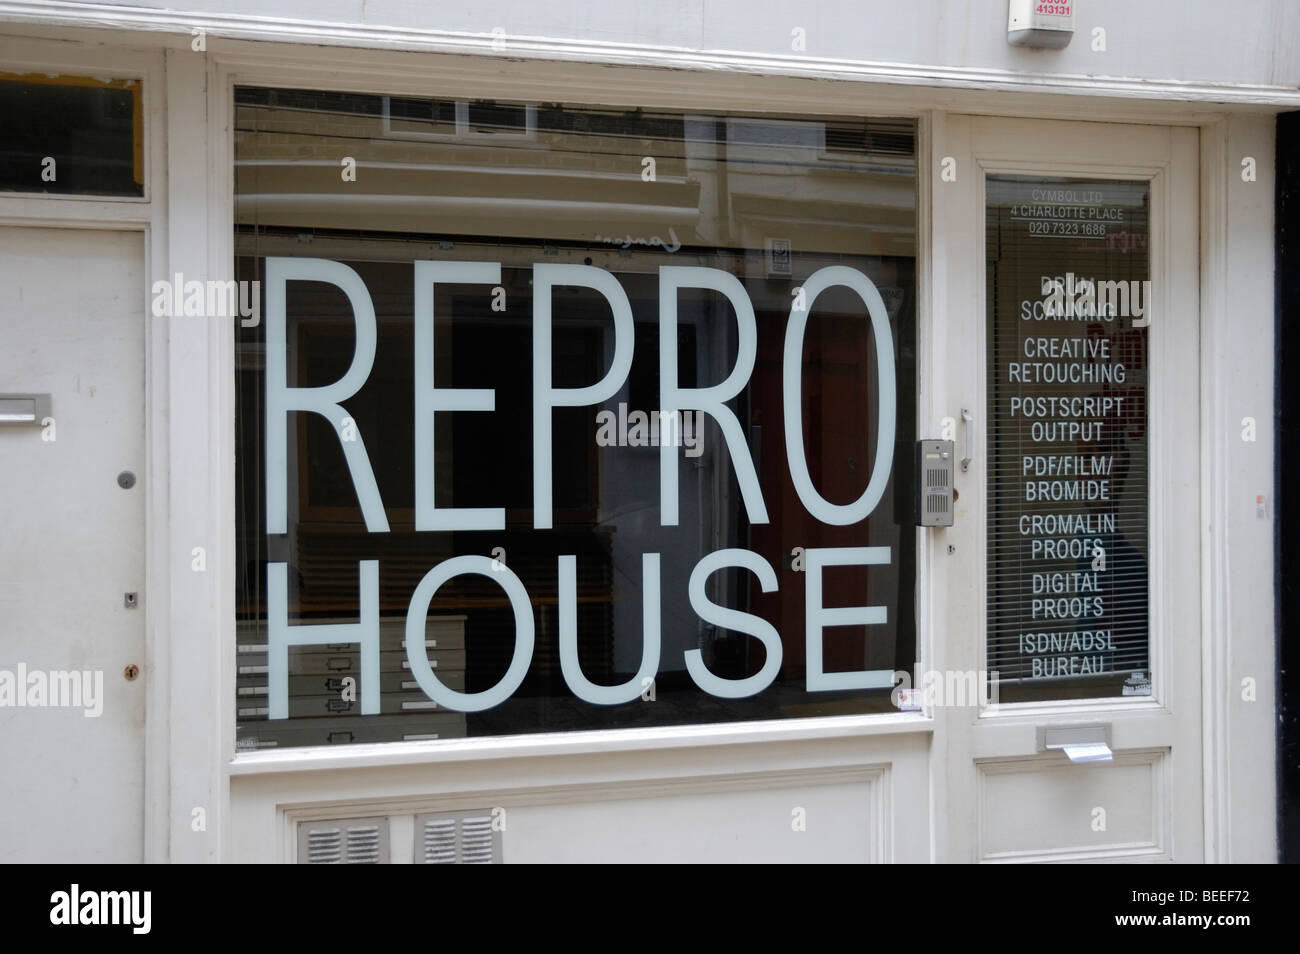 Reprographic shop exterior, London, England - Stock Image